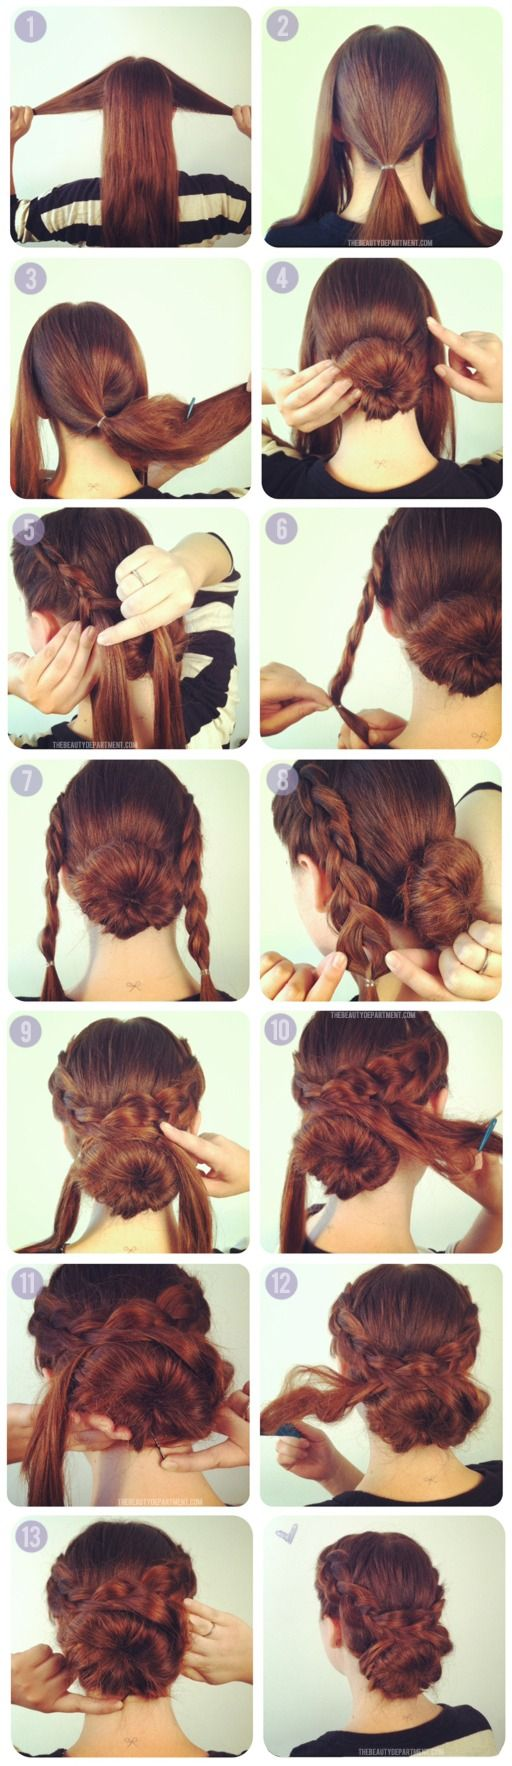 As we have been seeing, braids are back, and in... | ModCloth on Tumblr